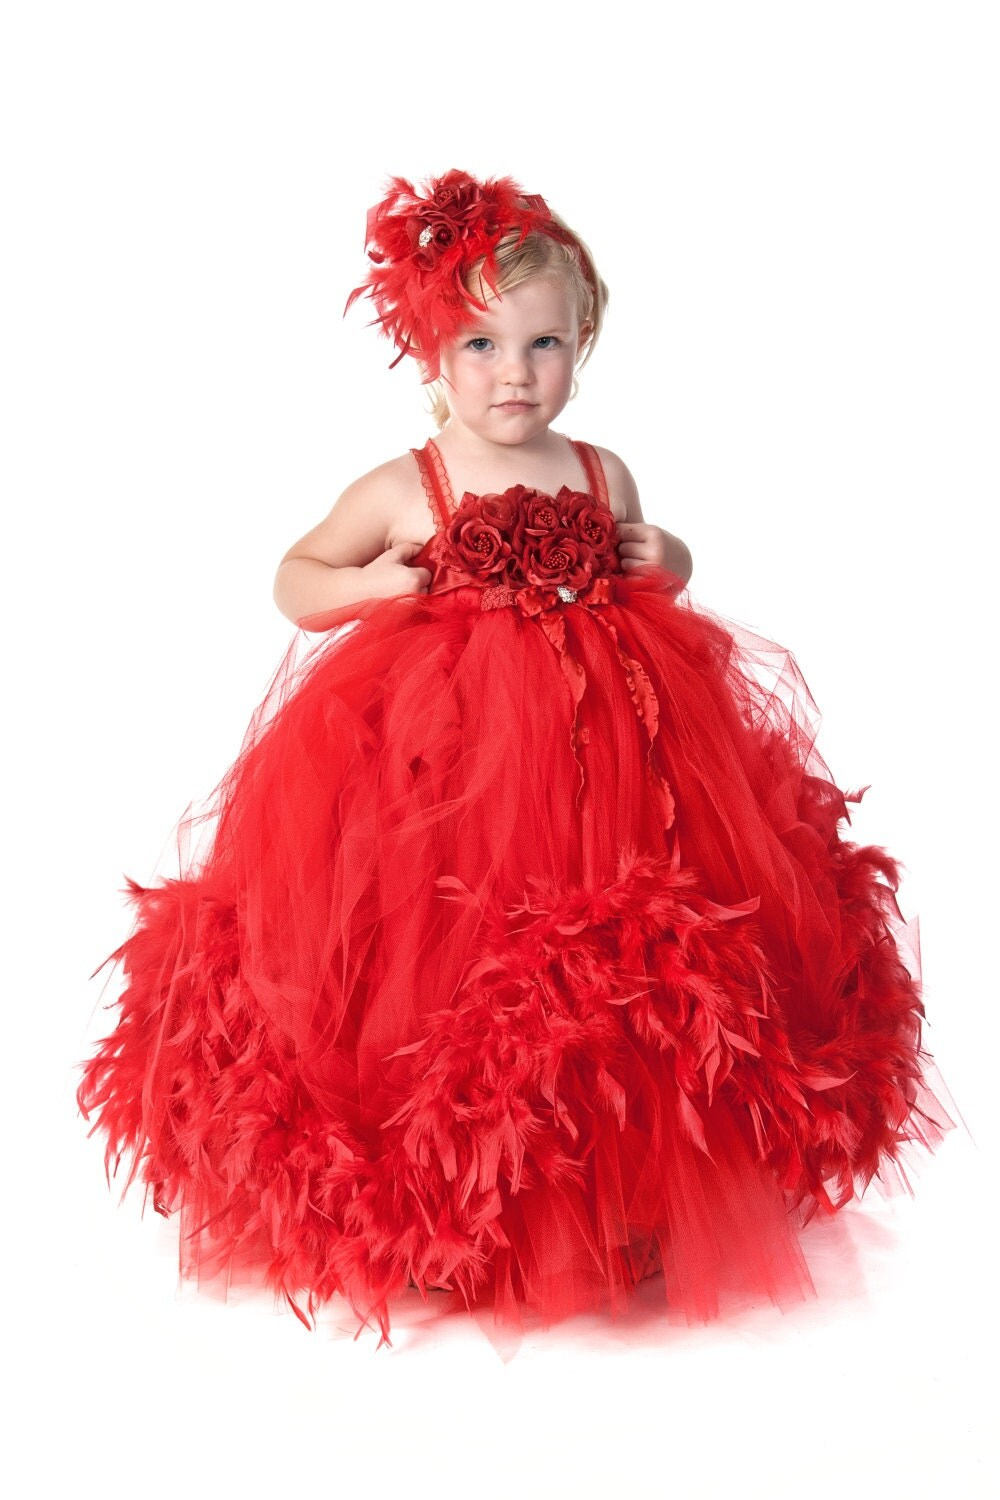 You searched for: tutu dress! Etsy is the home to thousands of handmade, vintage, and one-of-a-kind products and gifts related to your search. No matter what you're looking for or where you are in the world, our global marketplace of sellers can help you find unique and affordable options. Let's get started!